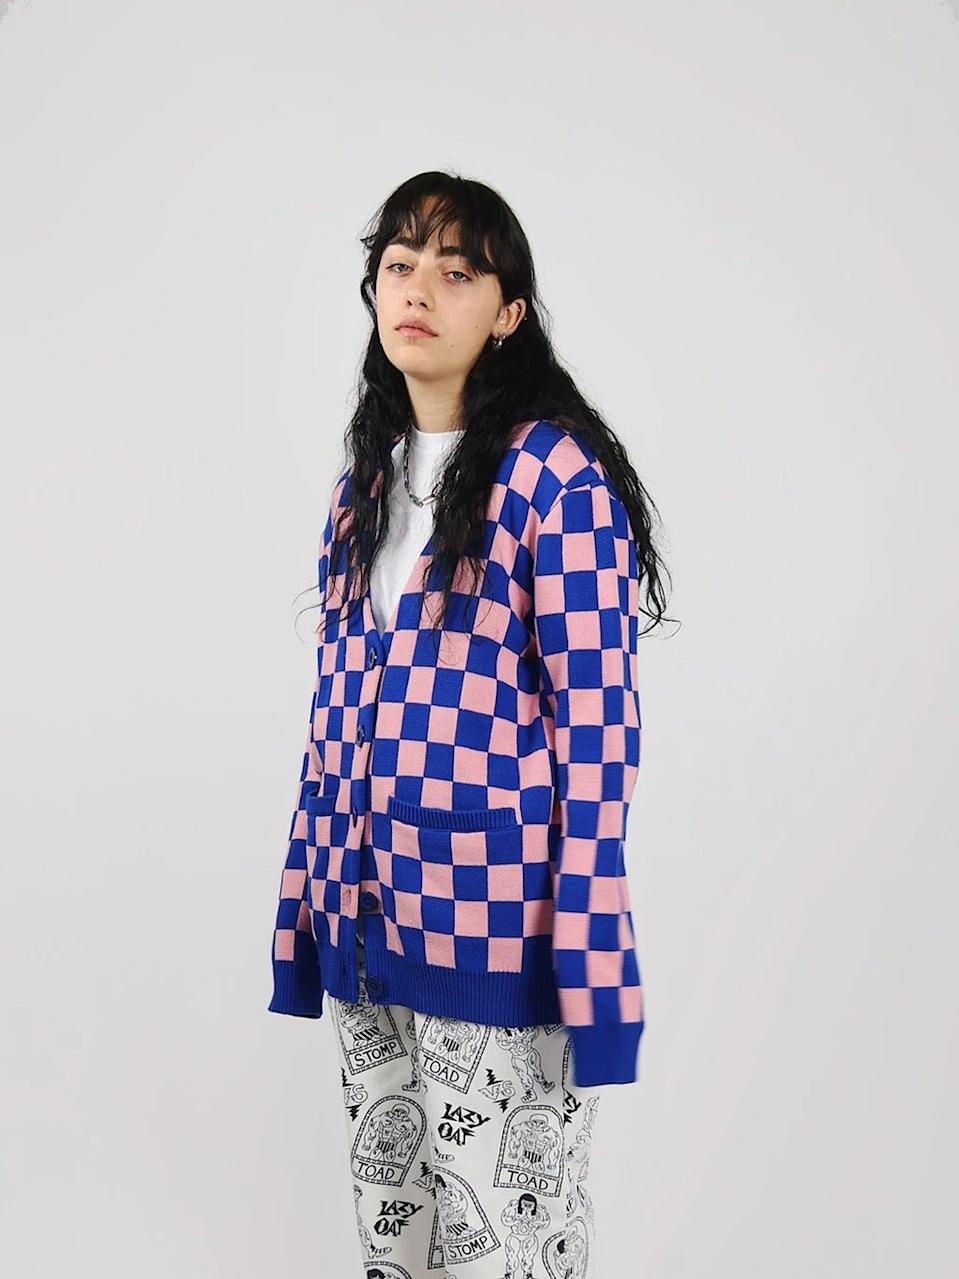 """<br><br><strong>Lazy Oaf</strong> Chequer Cardigan, $, available at <a href=""""https://www.lazyoaf.com/products/lazy-oaf-chequer-cardigan?"""" rel=""""nofollow noopener"""" target=""""_blank"""" data-ylk=""""slk:Lazy Oaf"""" class=""""link rapid-noclick-resp"""">Lazy Oaf</a>"""